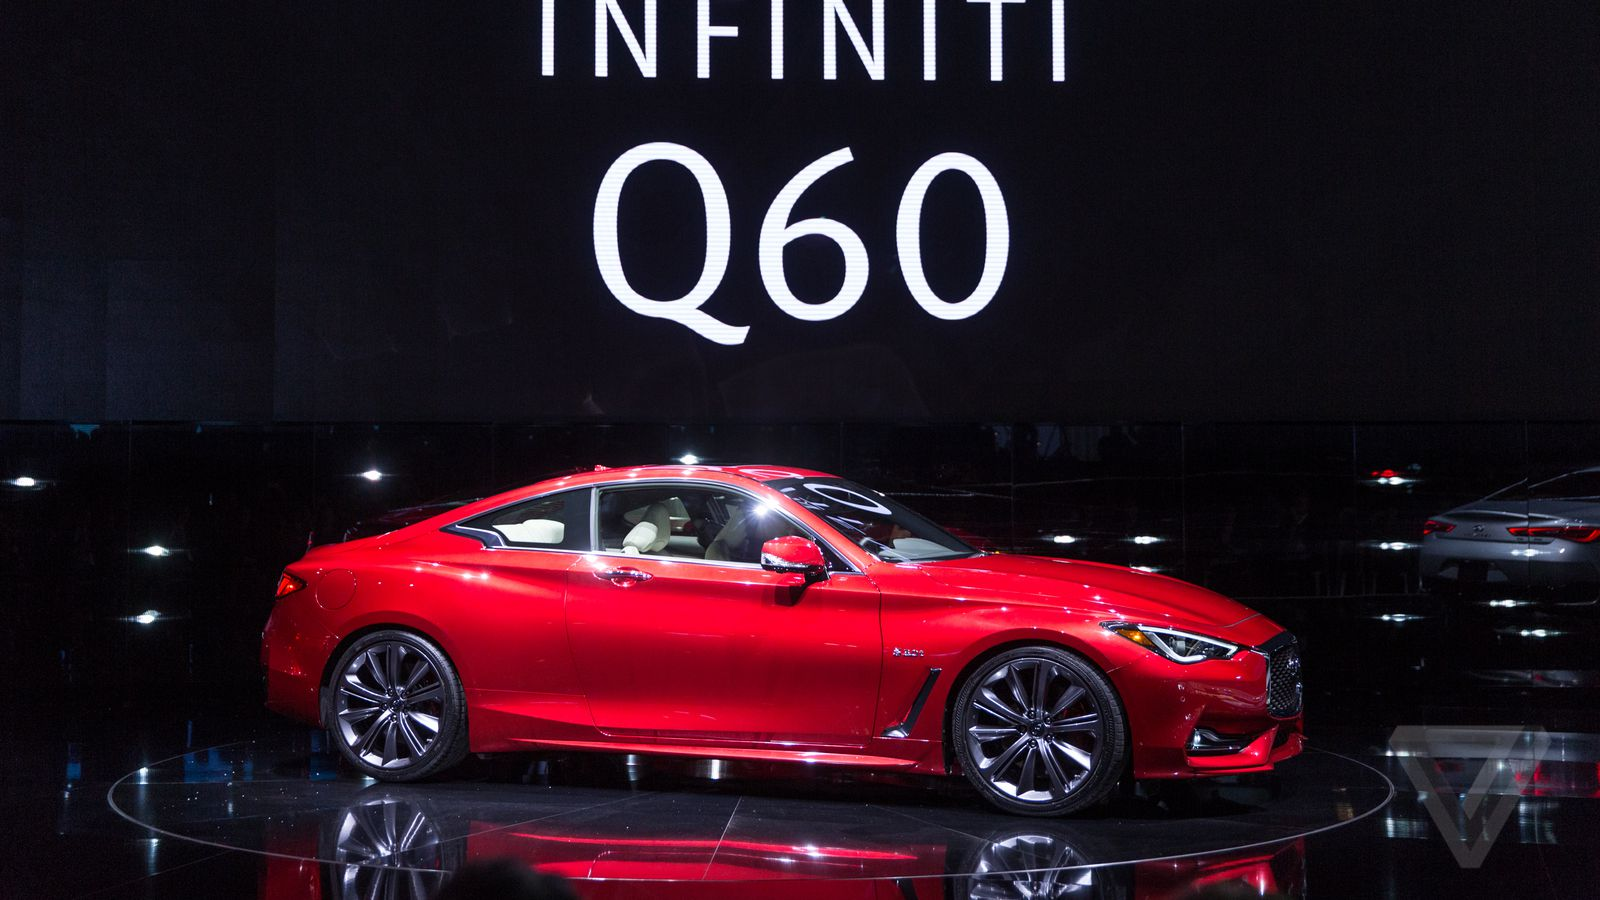 infiniti q60 blacked out. the new infiniti q60 is a svelte luxury sports coupe with 400 horsepower verge blacked out